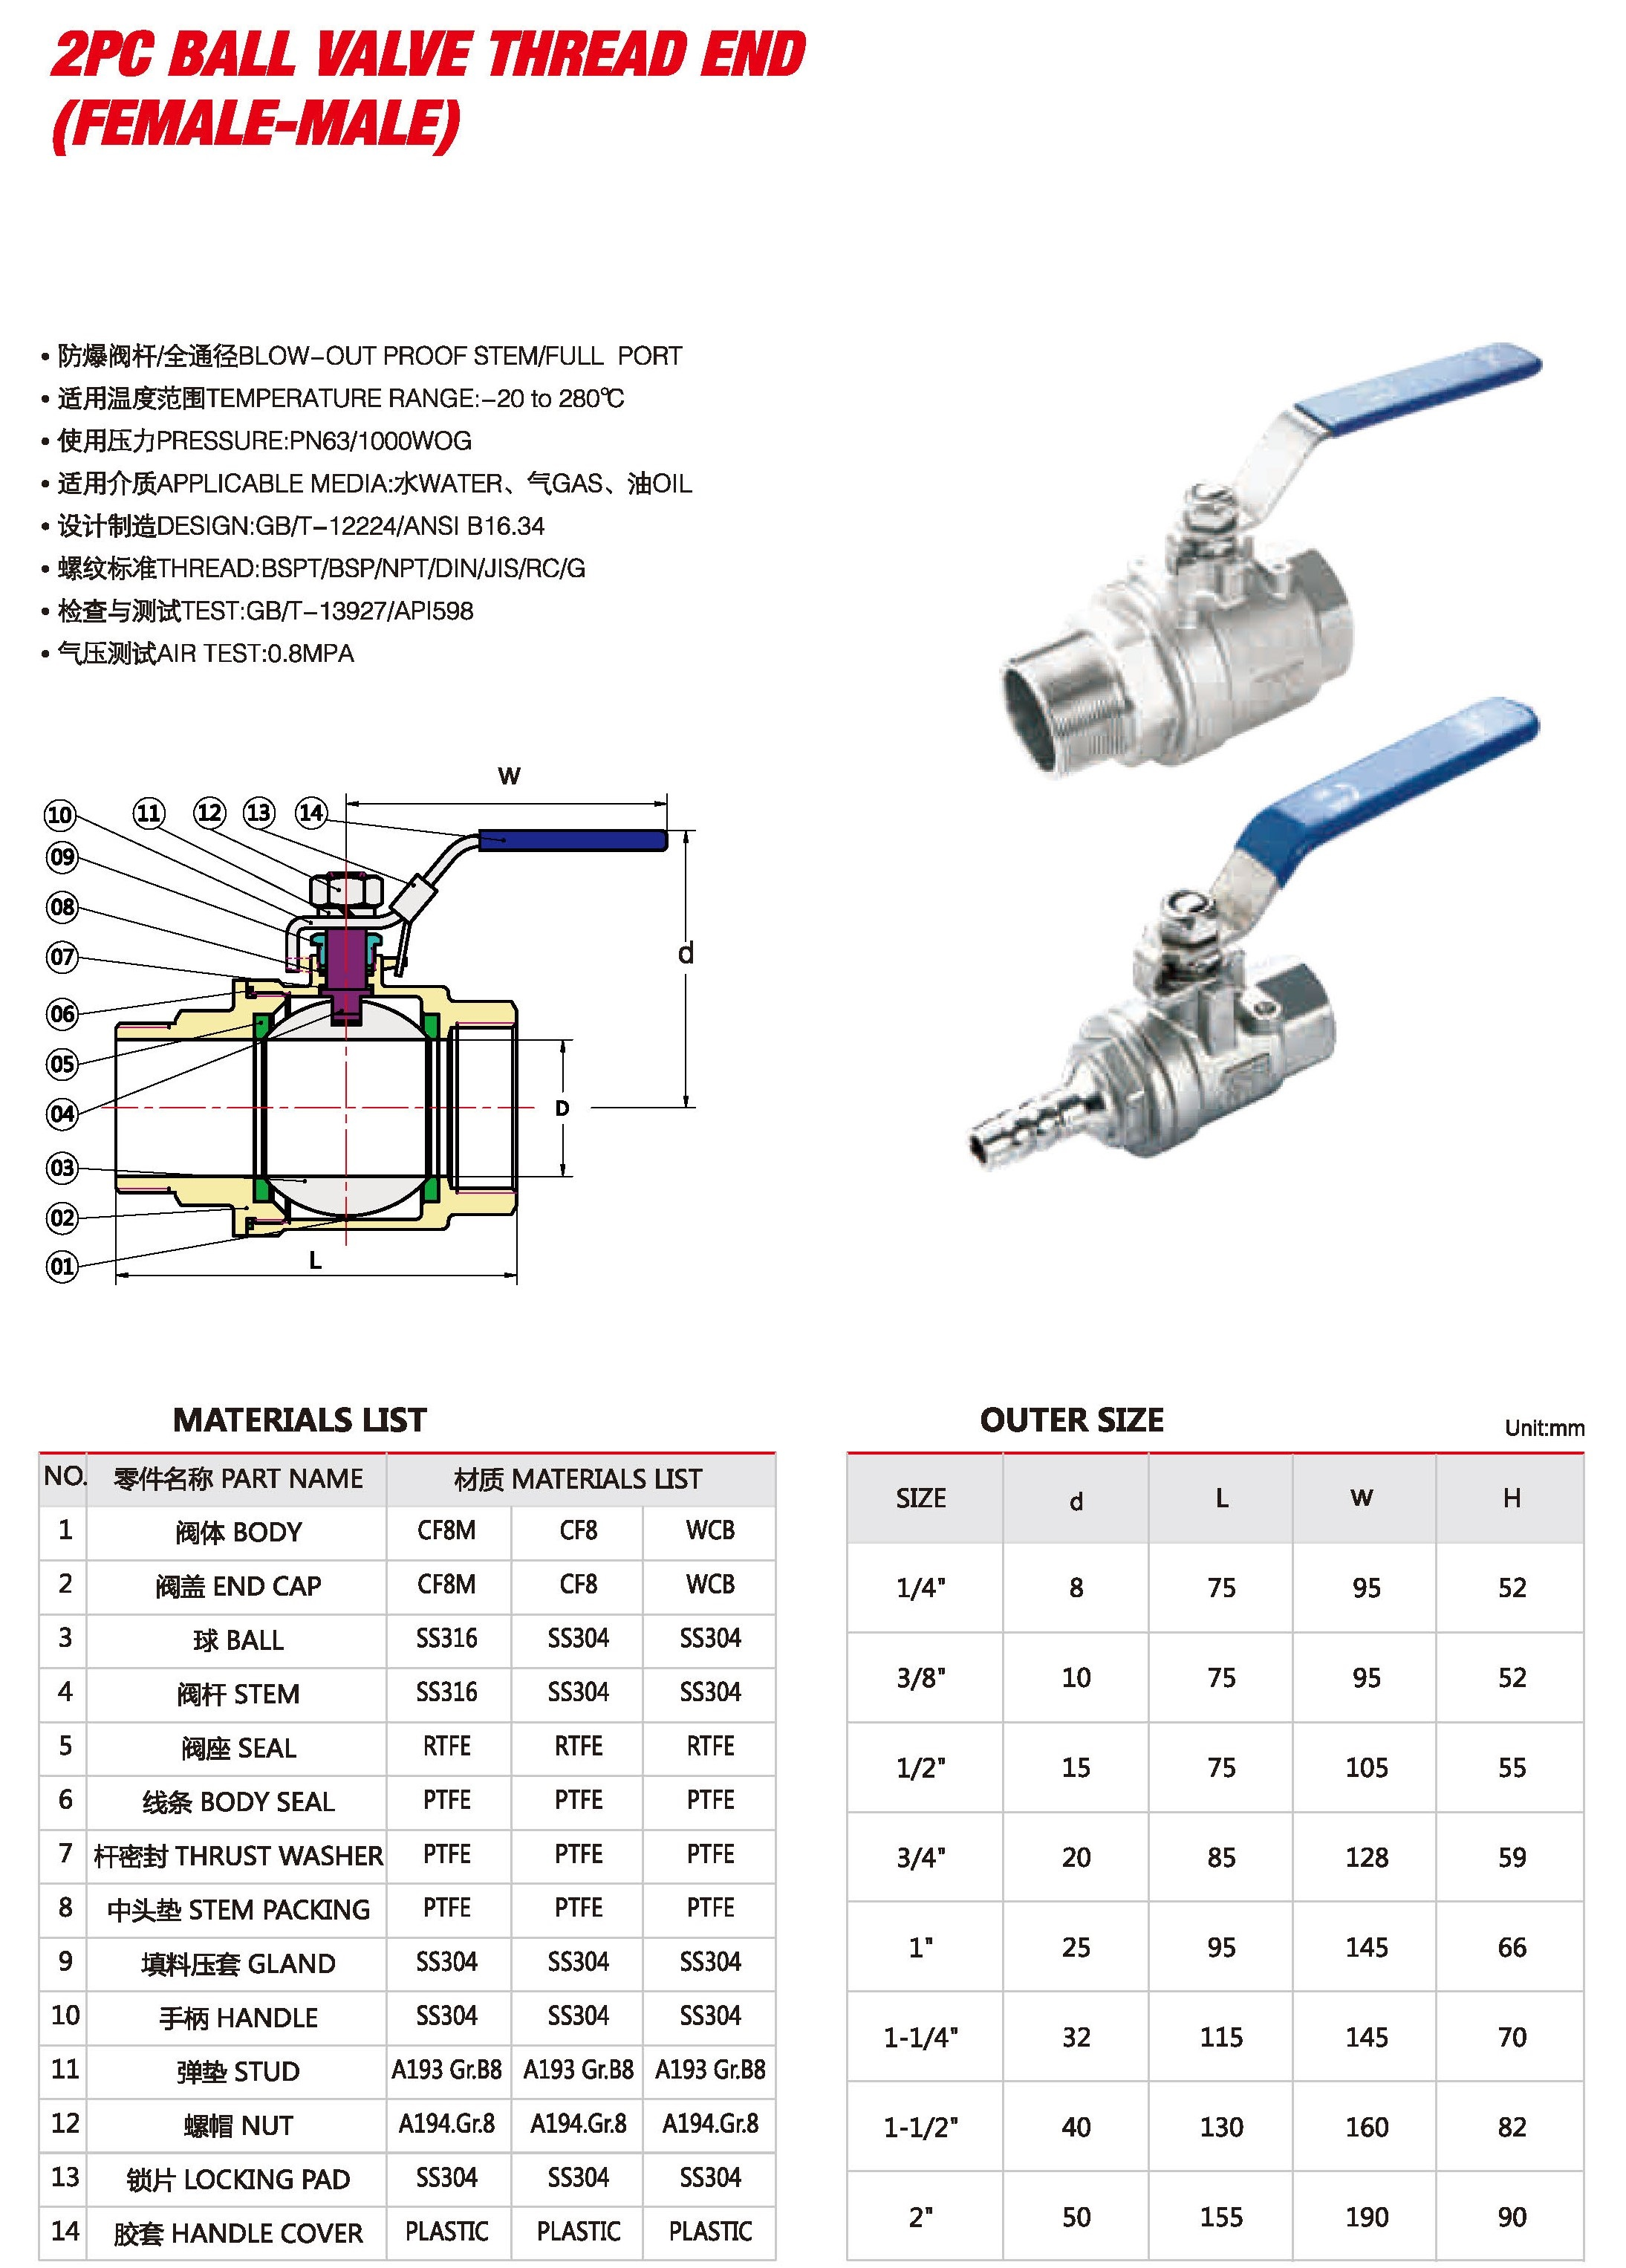 2PC BODY FEMALE-MALE THREADED BALL VALVE